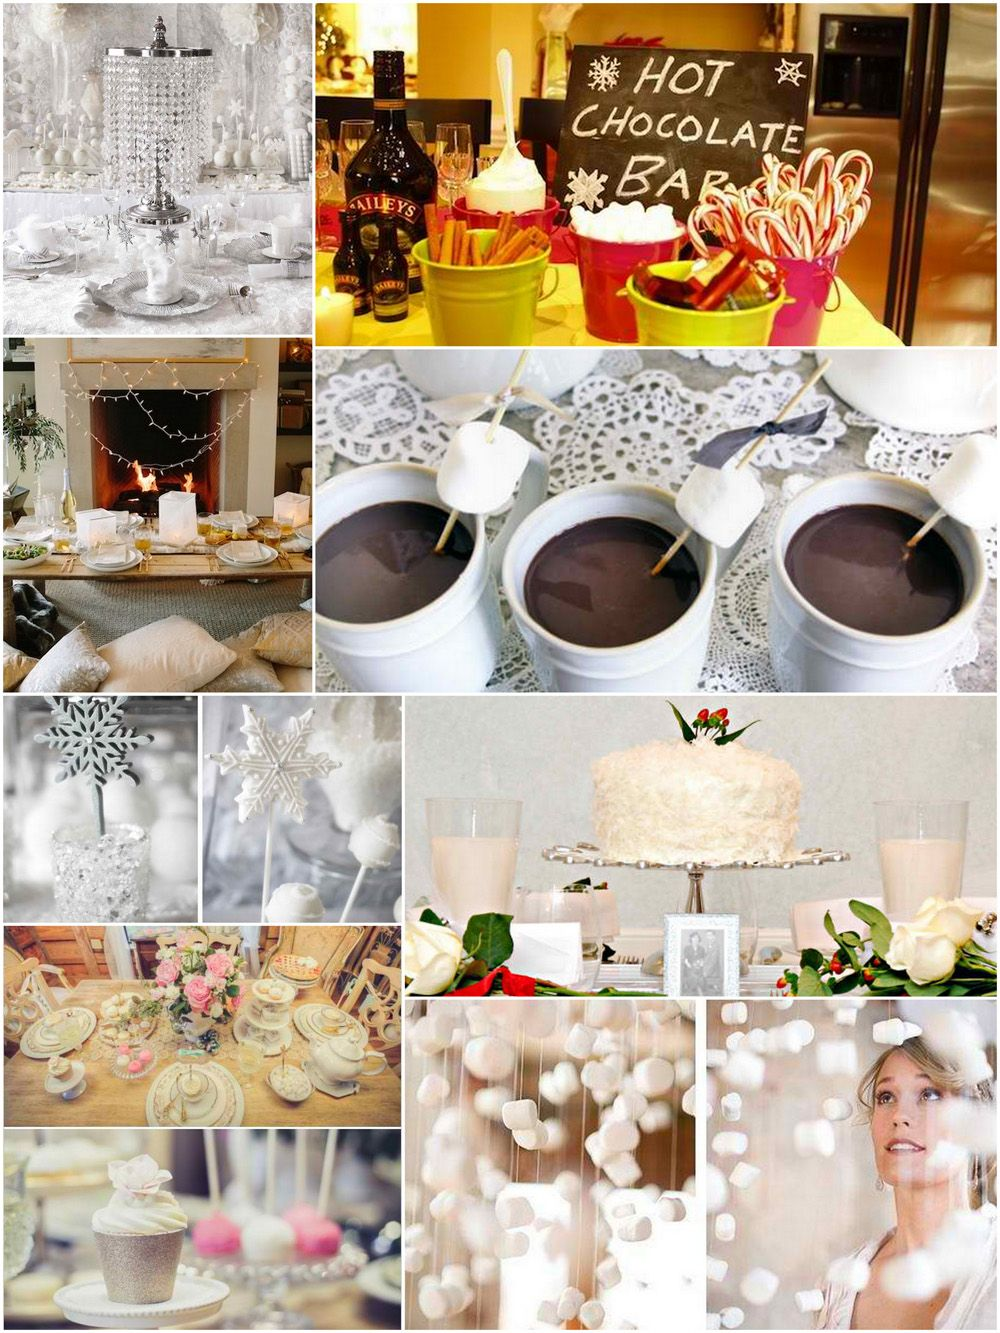 Winter Bridal Shower Ideas Diy Personalized Mugs The Day Party Pinterest Showers And